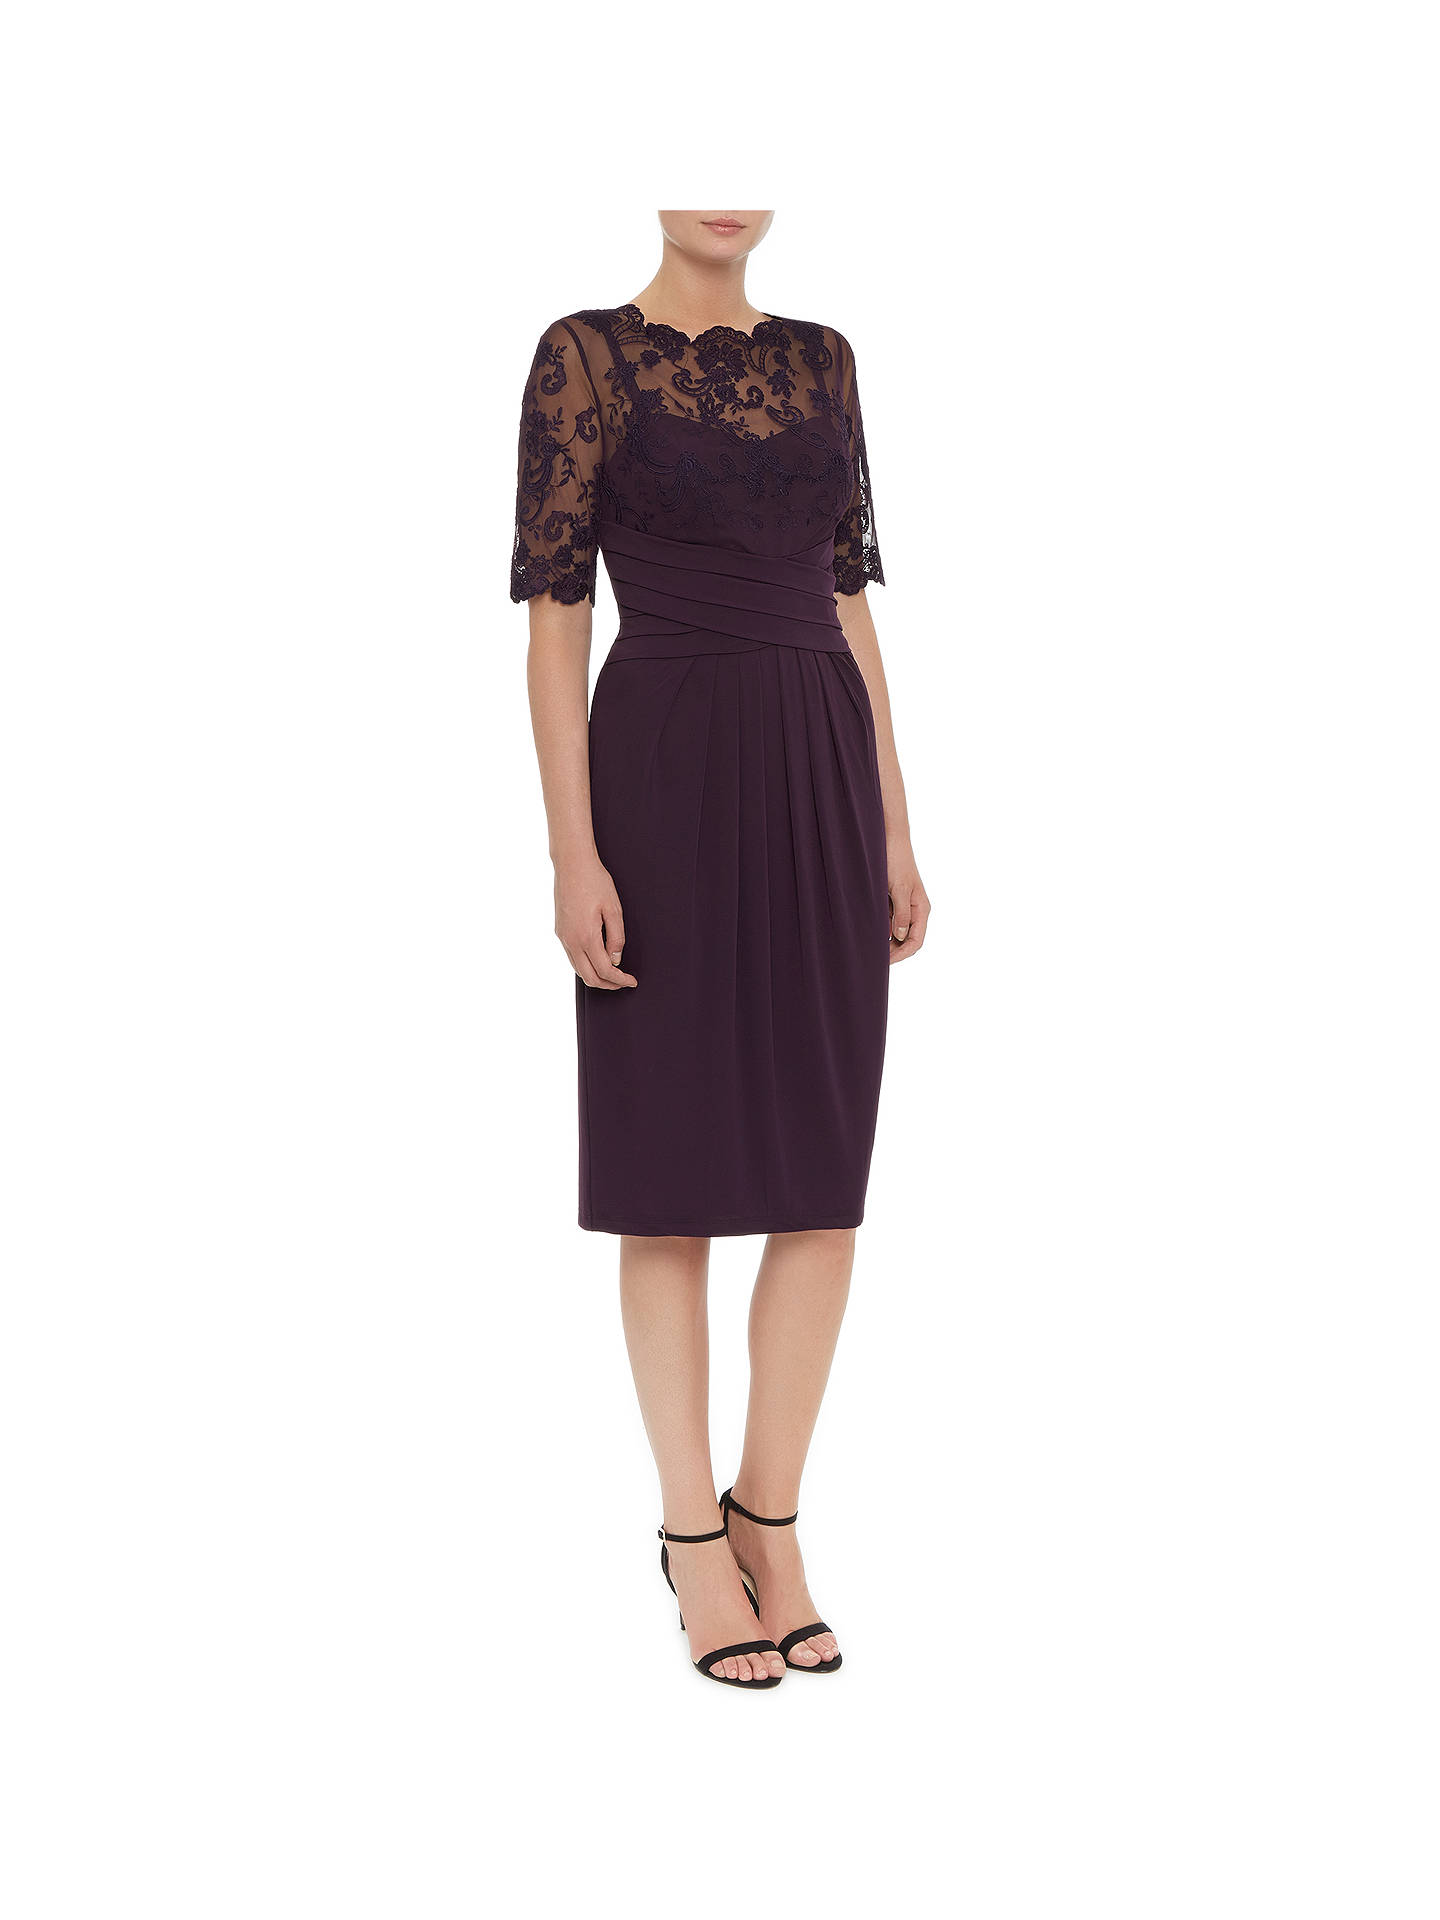 3024f4d48a9 ... Buy Kaliko Lace and Jersey Dress, Dark Purple, 8 Online at  johnlewis.com ...